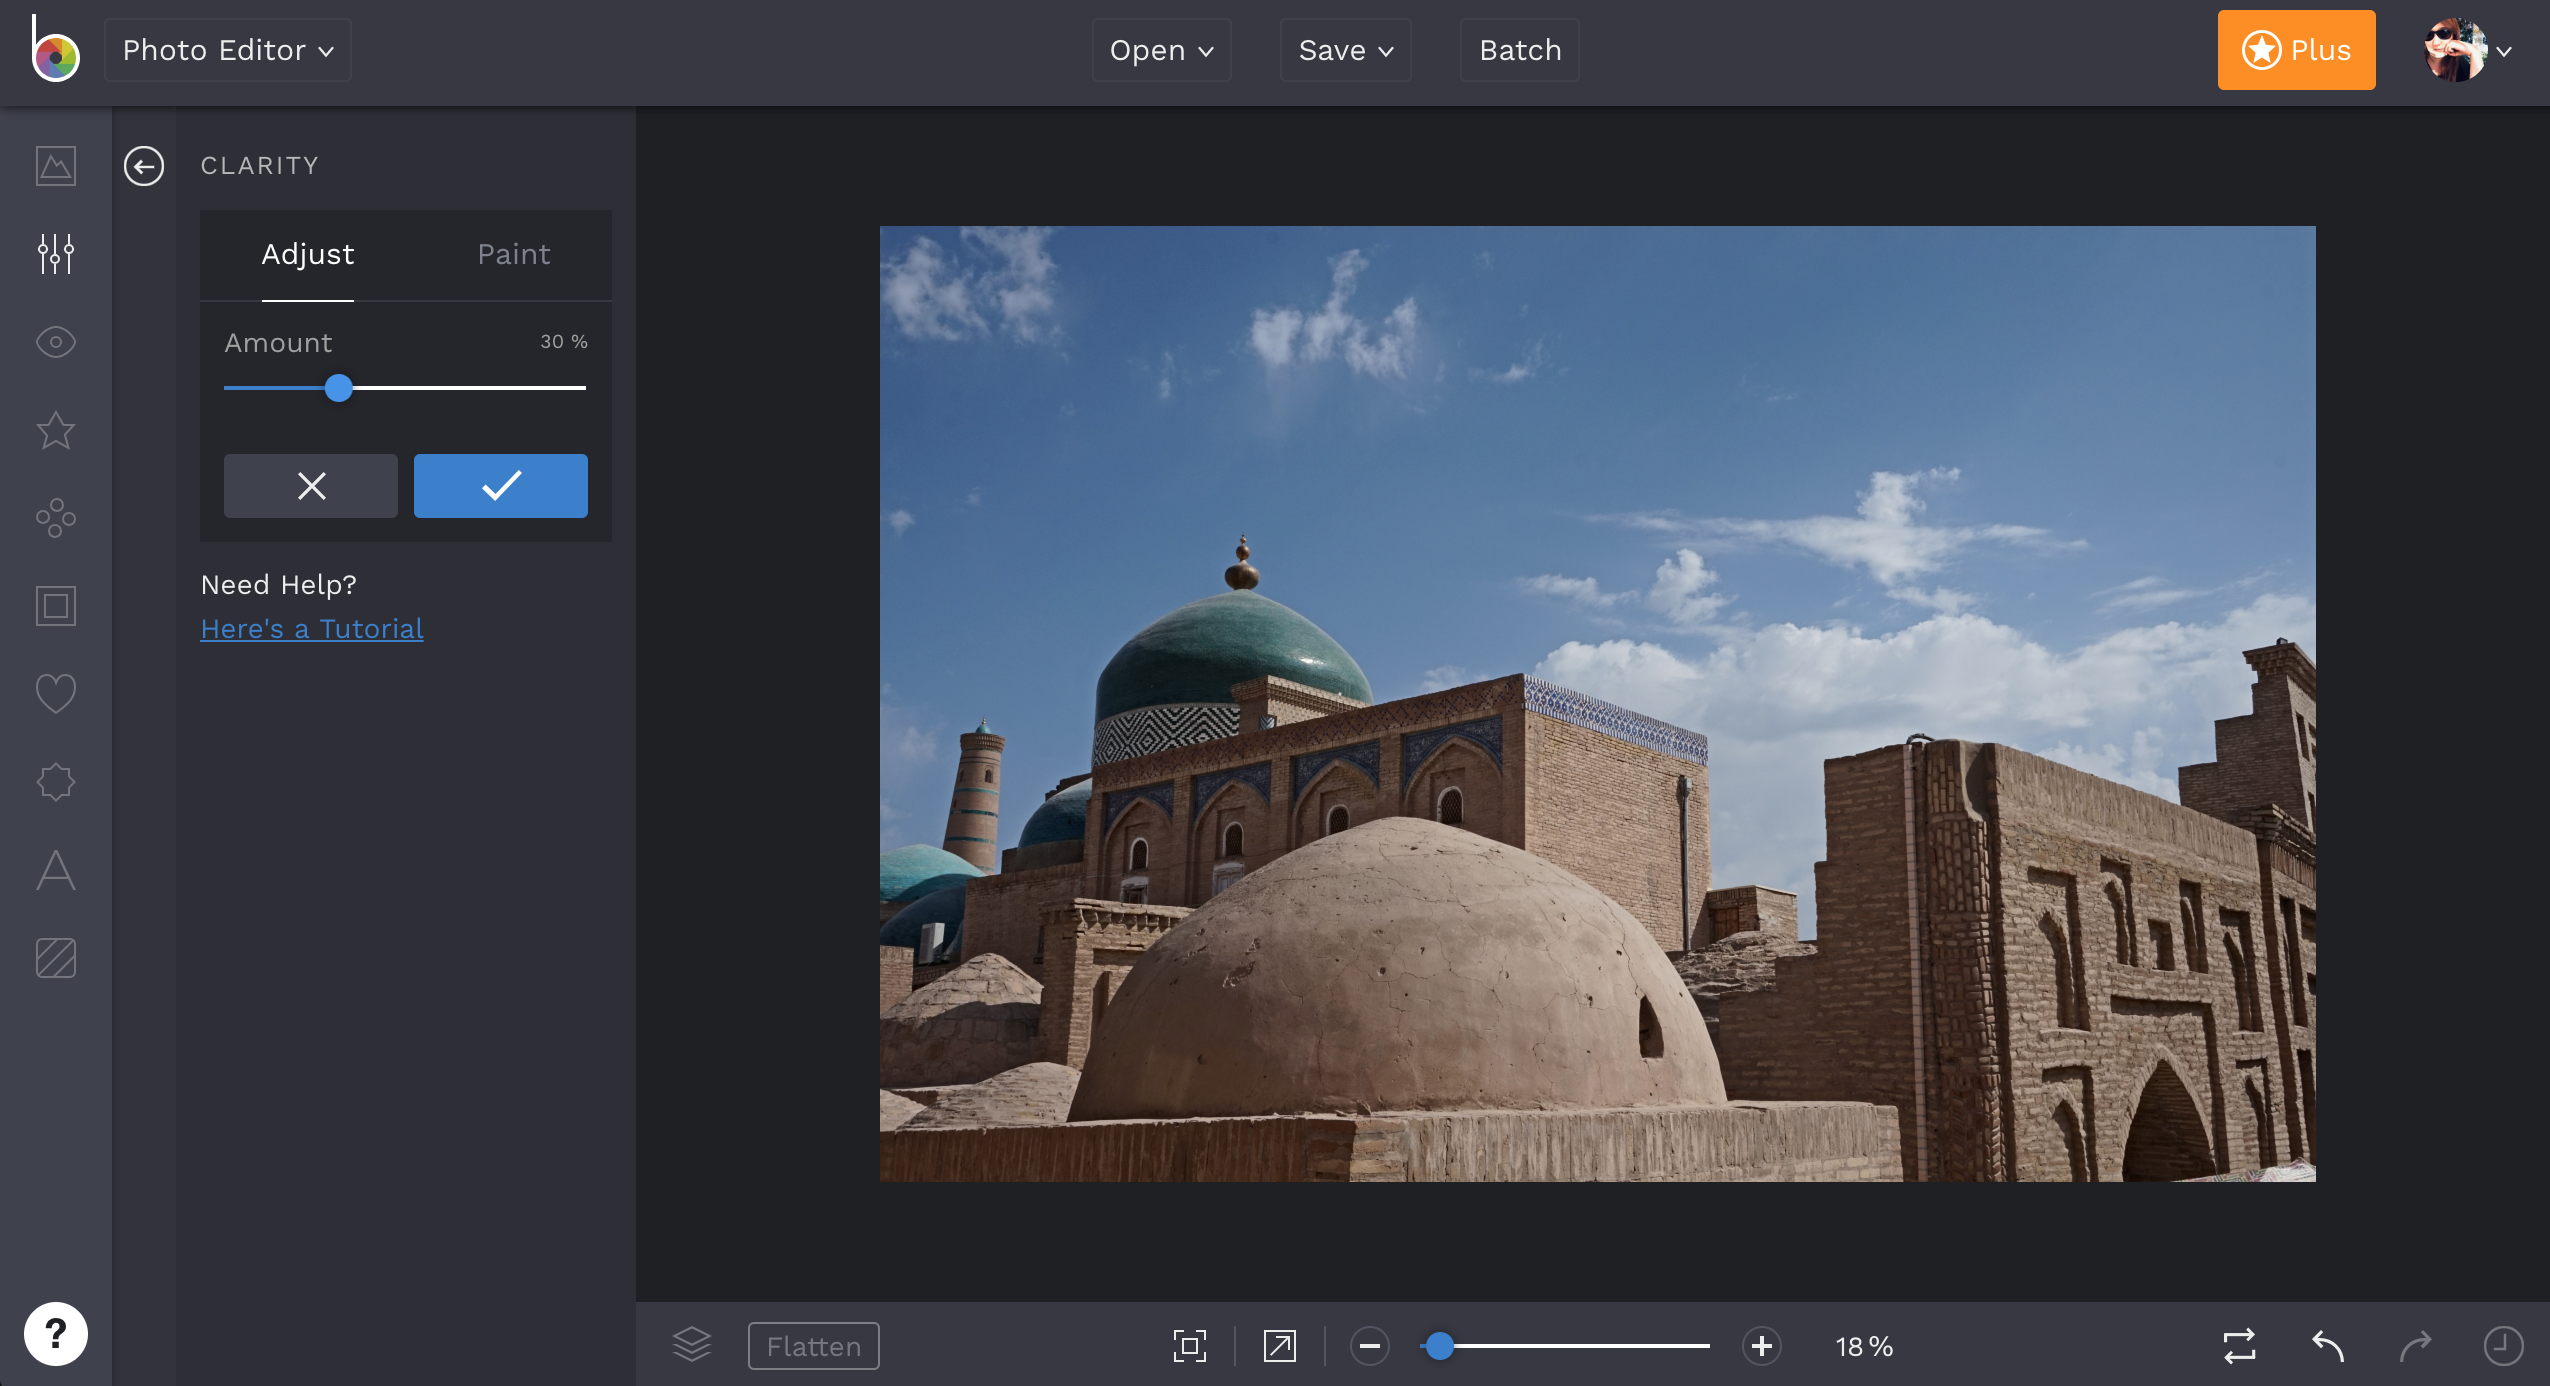 Clarity Tool in the Photo Editor